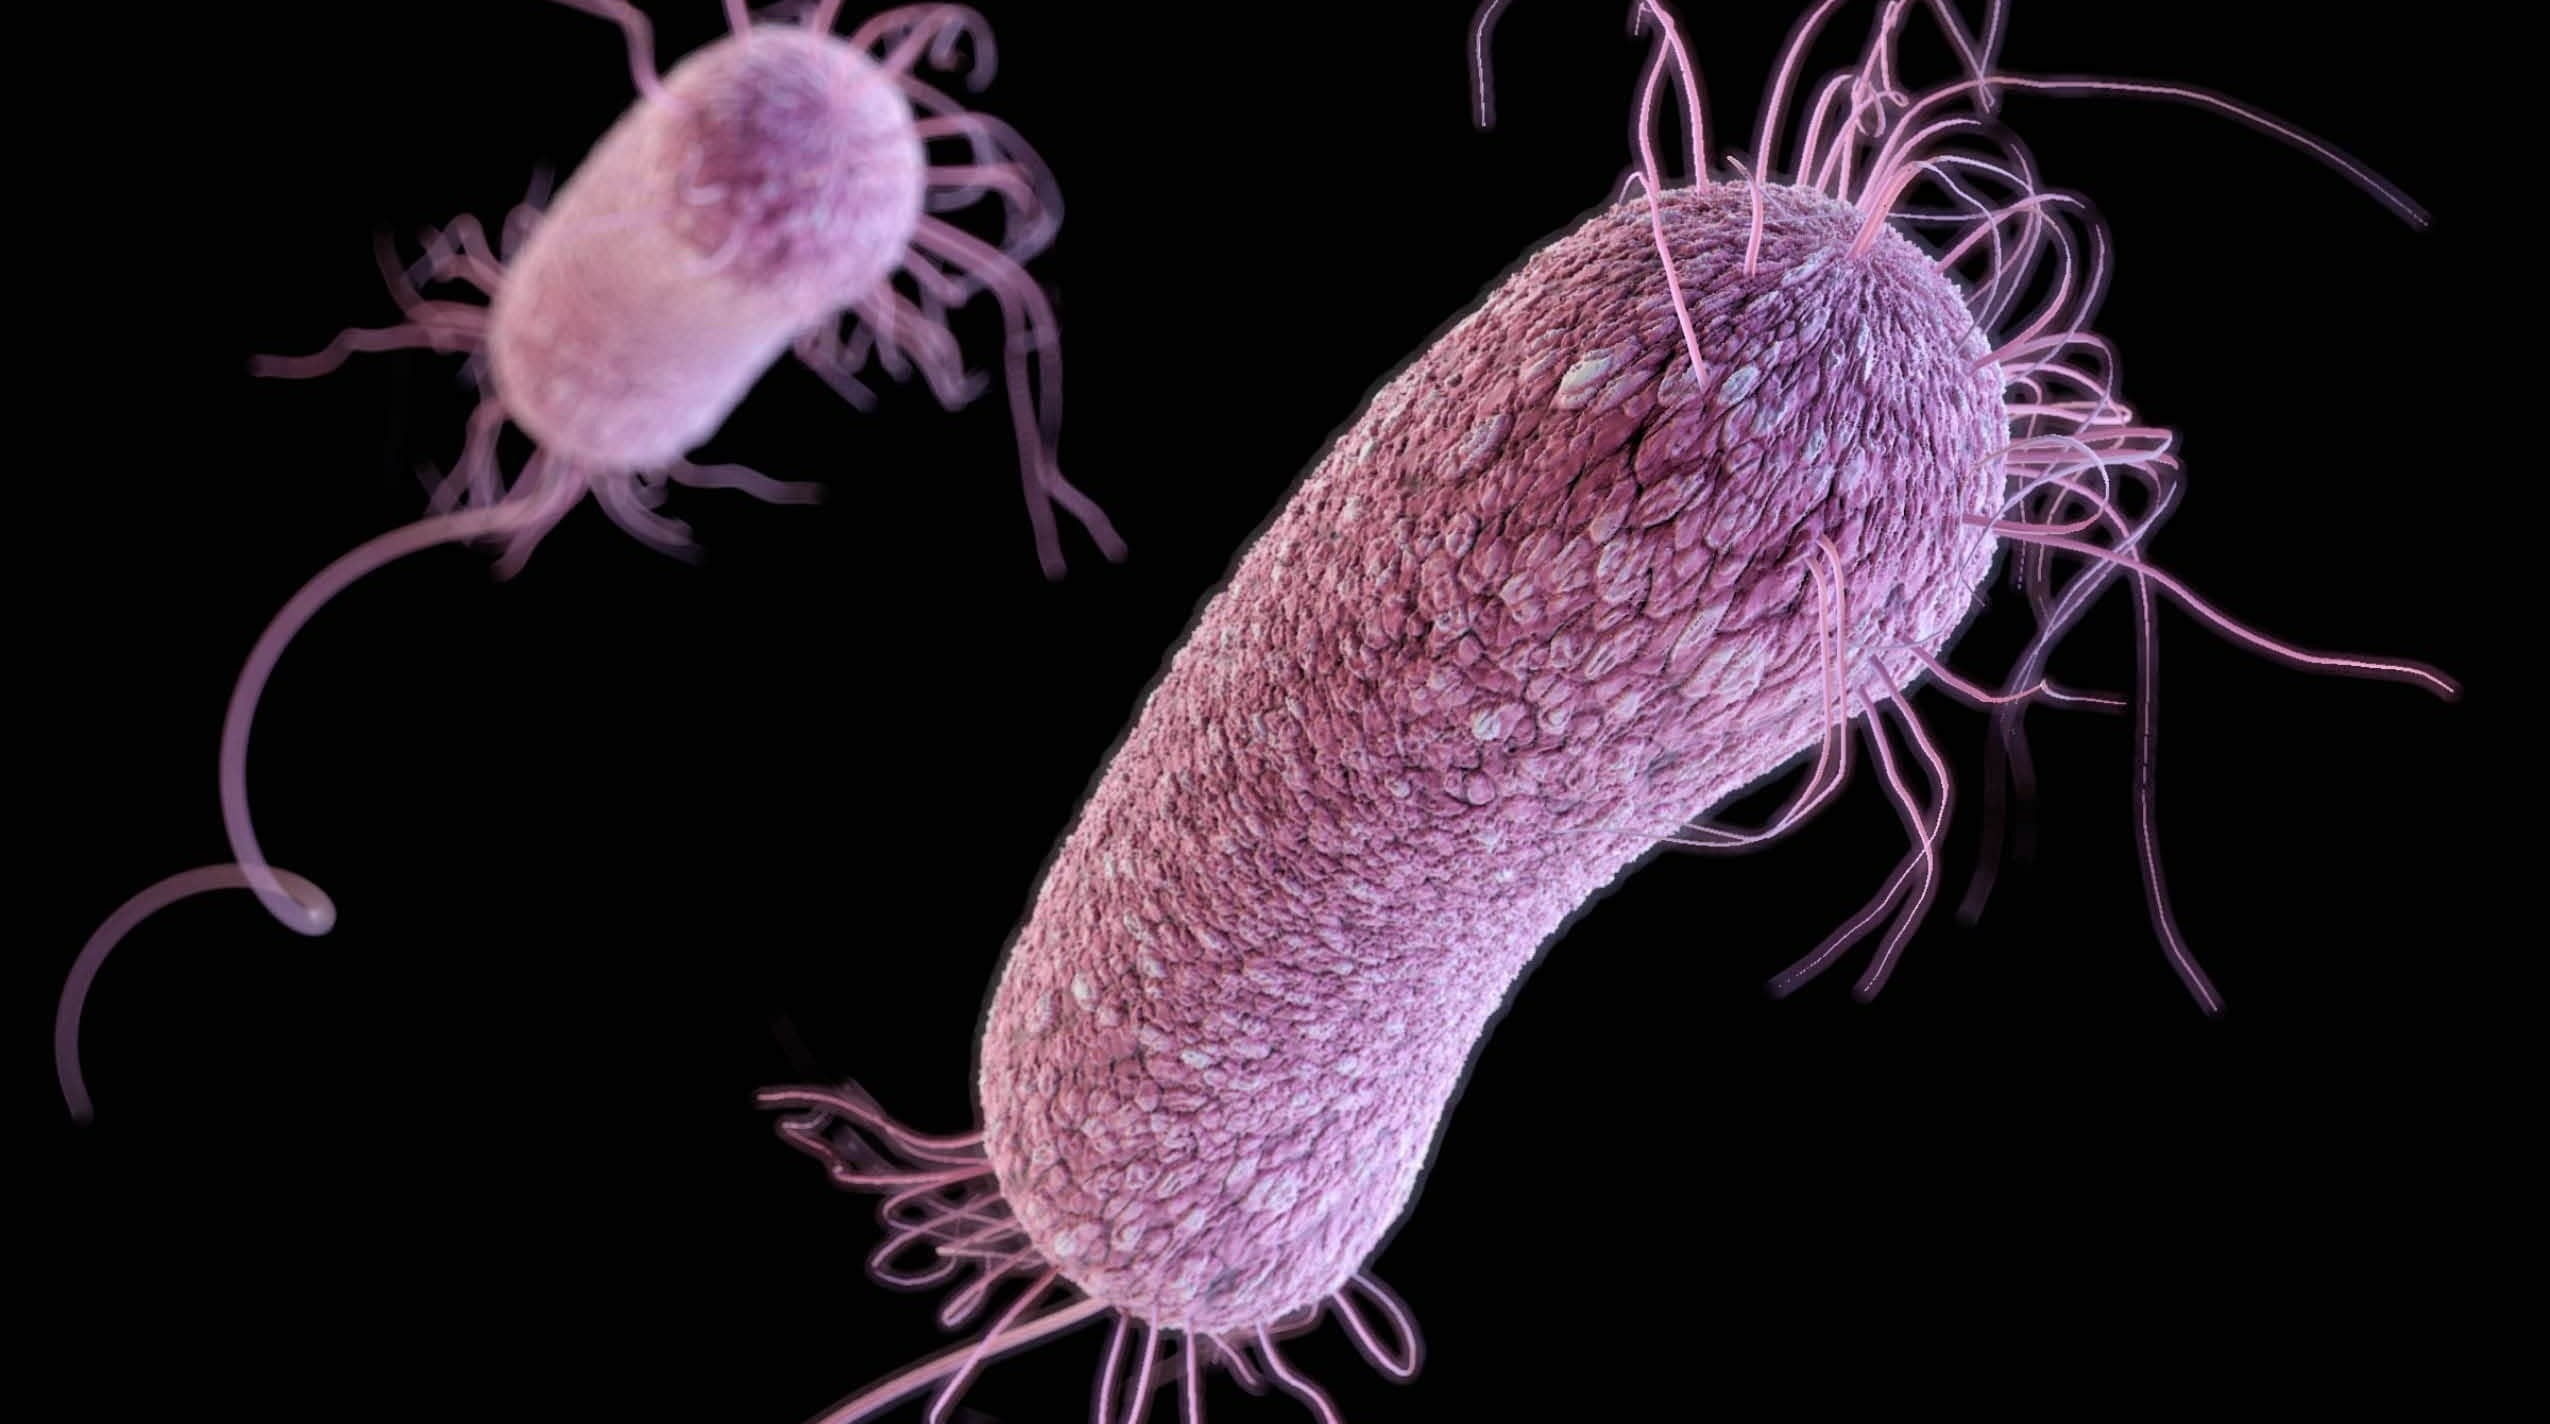 It Took Just Three Weeks For Superbug To Resist Last-Resort Drug, Doctors Say